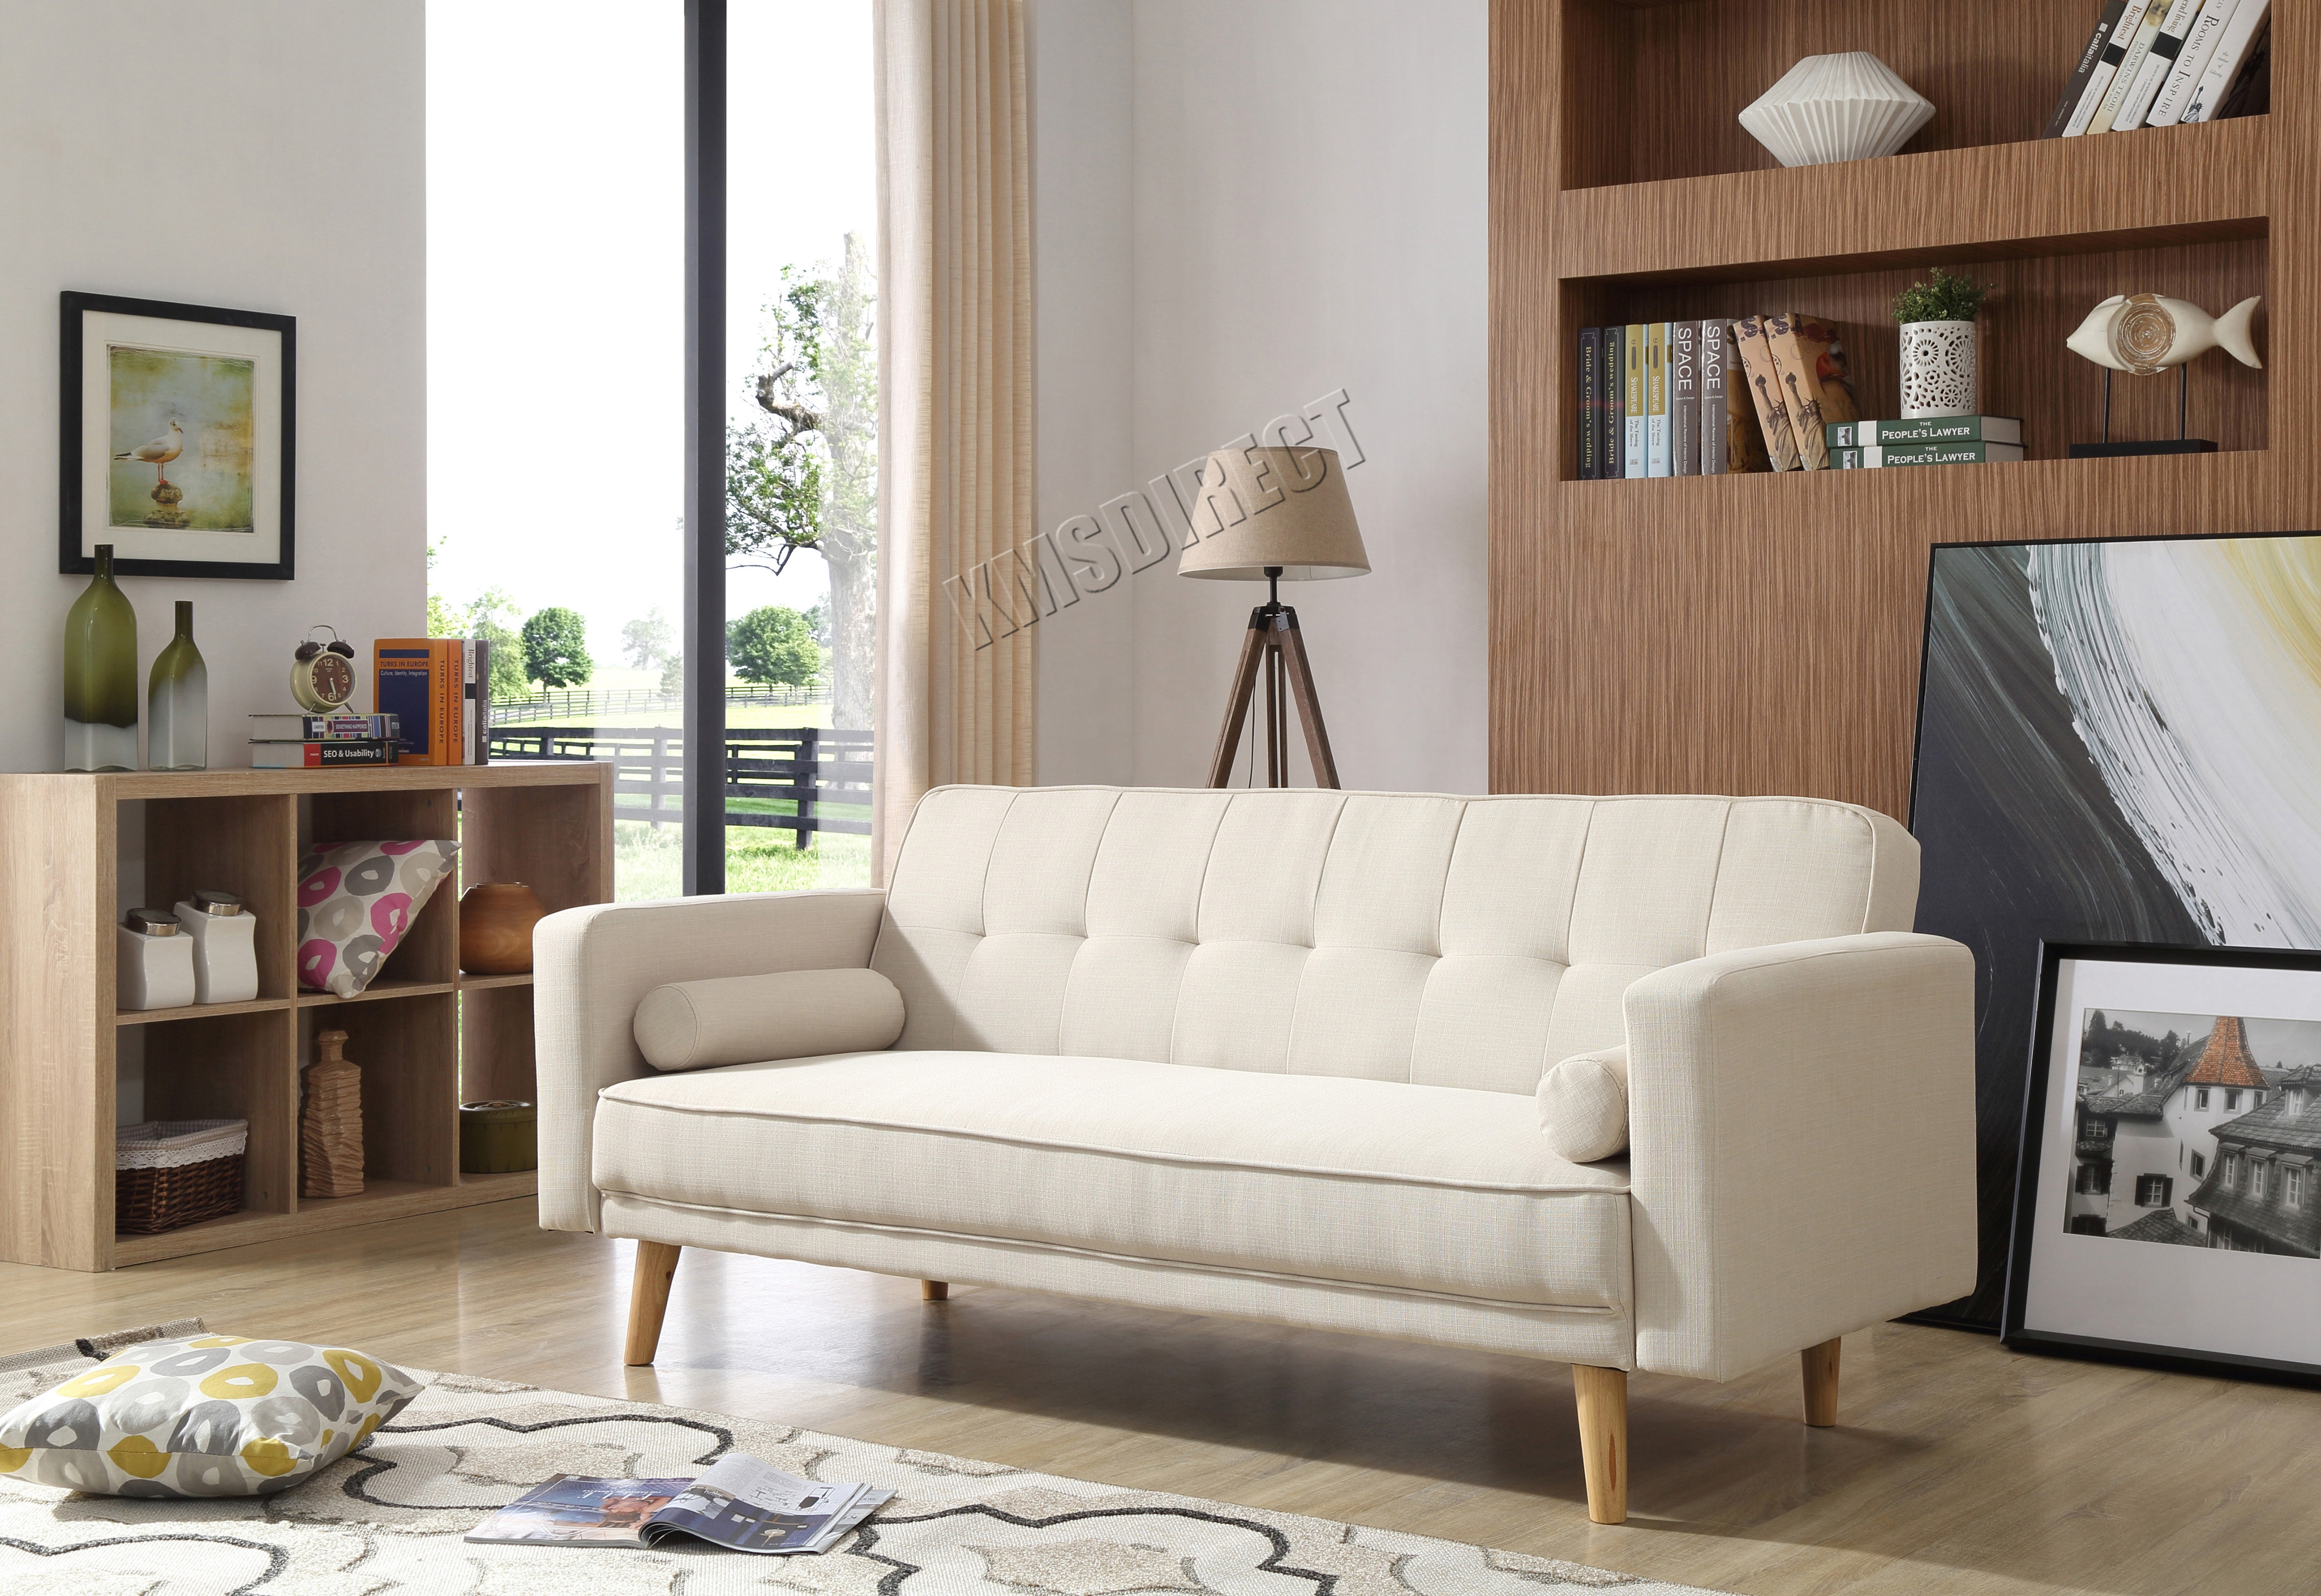 Westwood Fabric Sofa Bed 3 Seater Couch Luxury Home